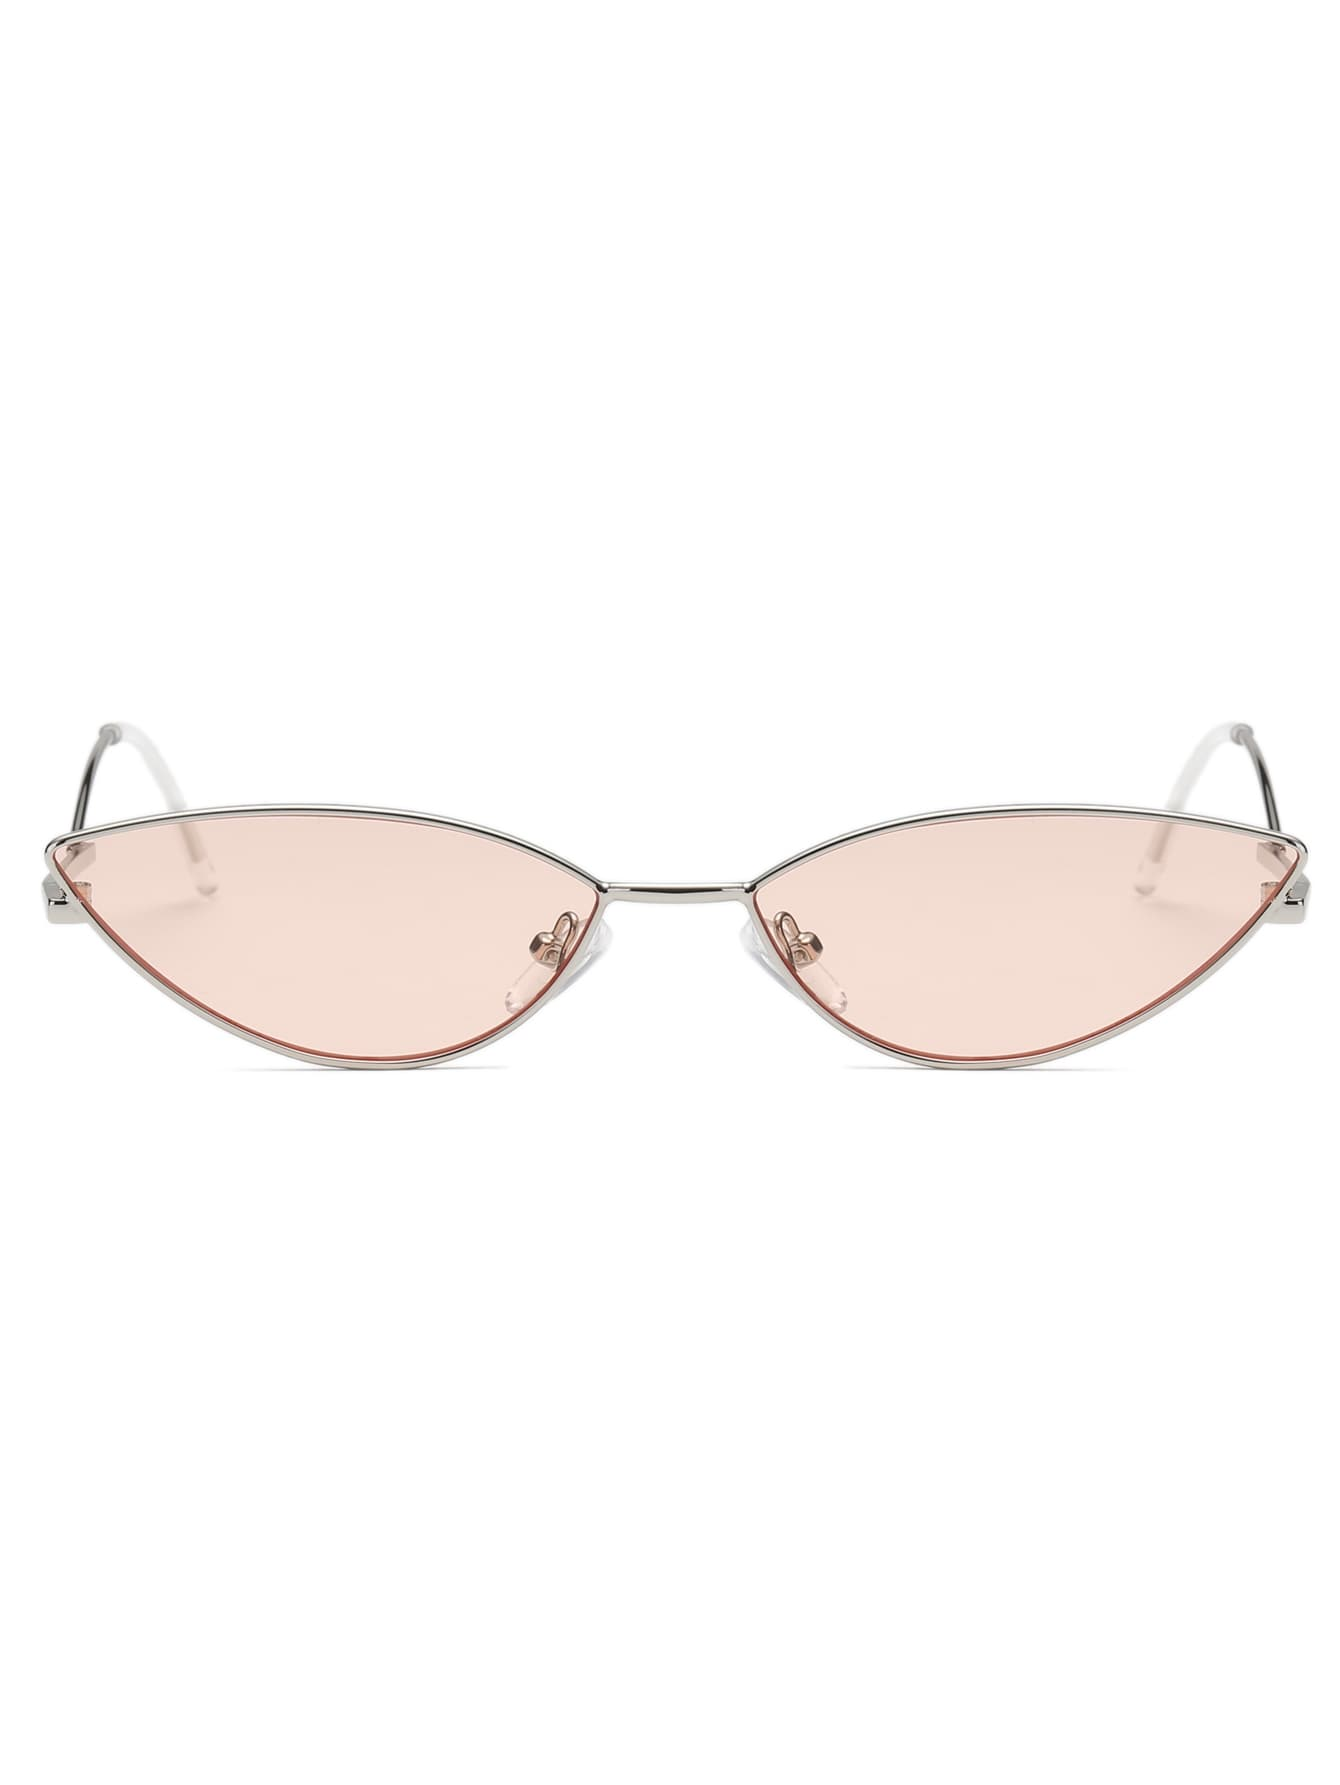 Tinted Lens Cat Eye Sunglasses - Slangz TeeZ